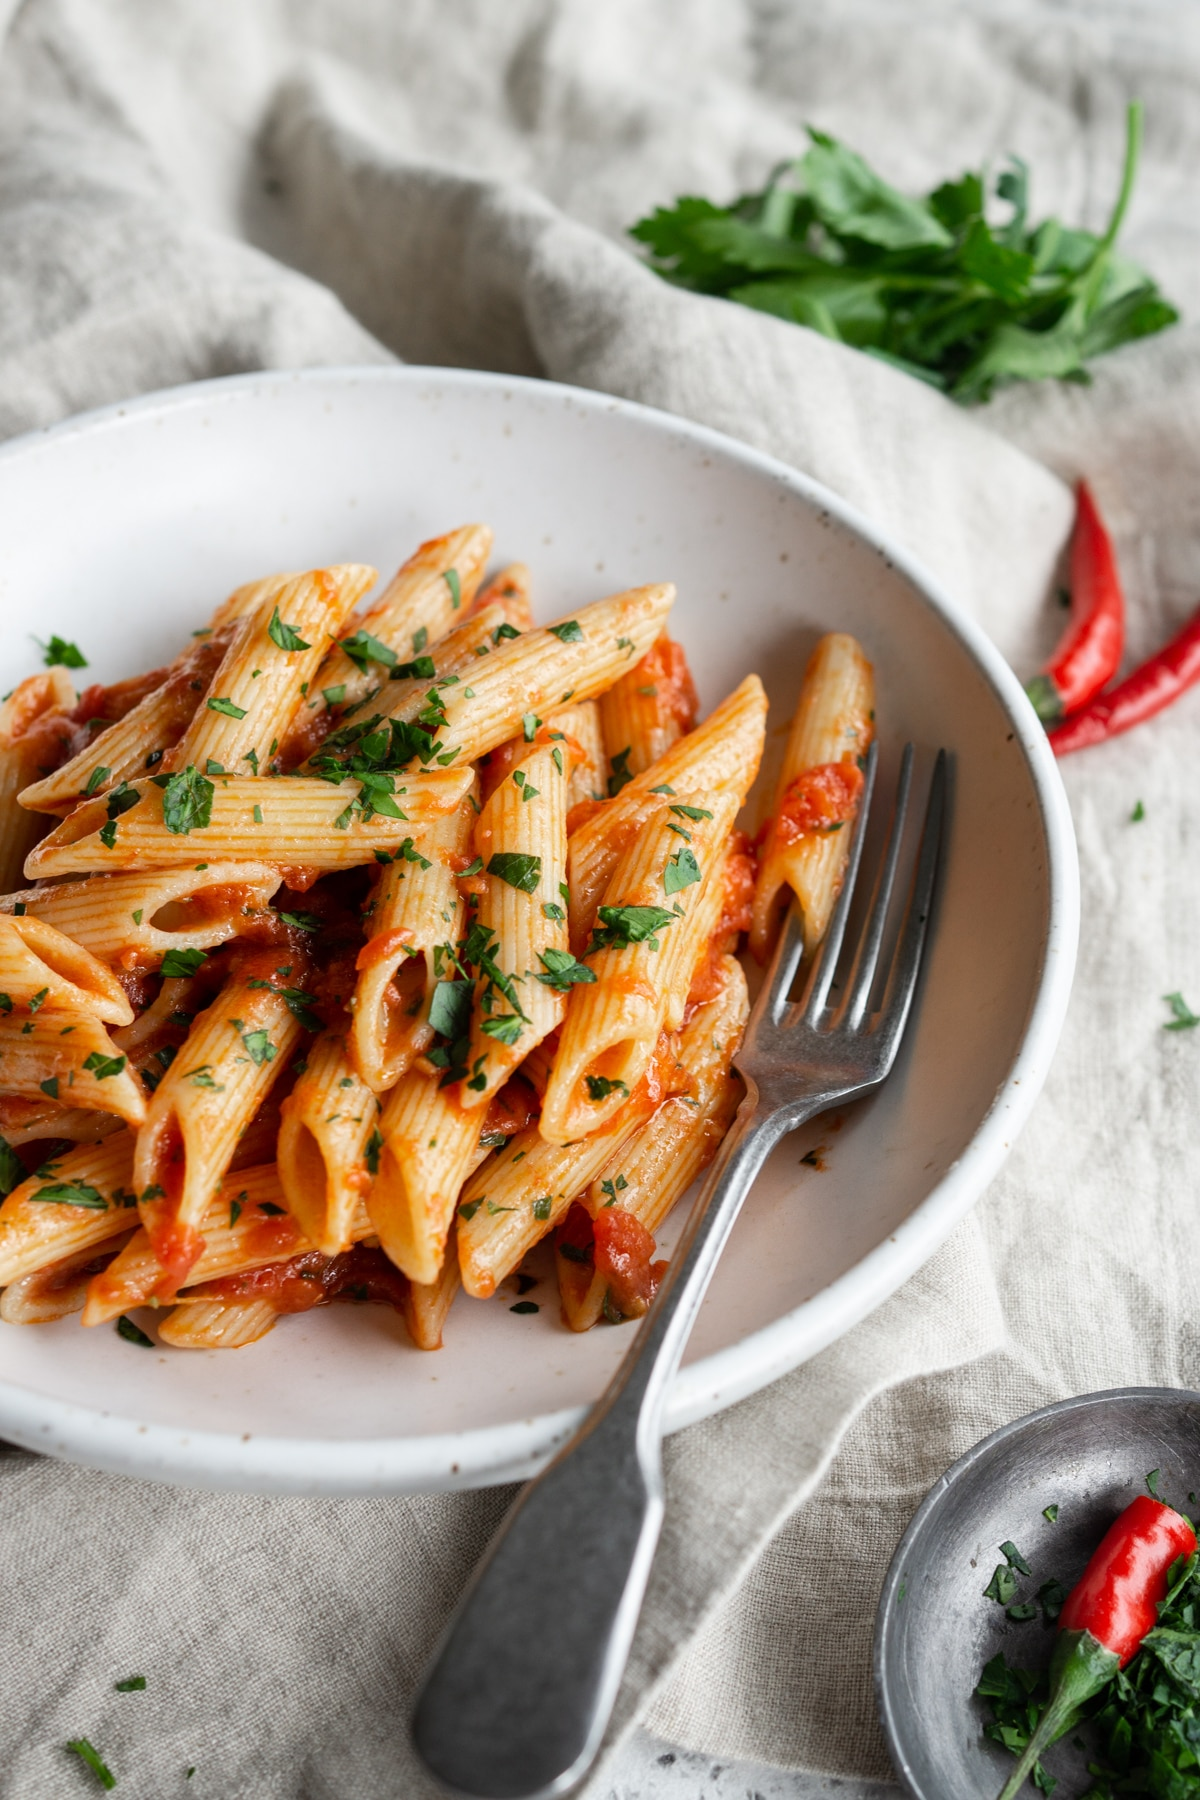 Penne arrabbiata in a bowl with a fork and chili peppers in the background